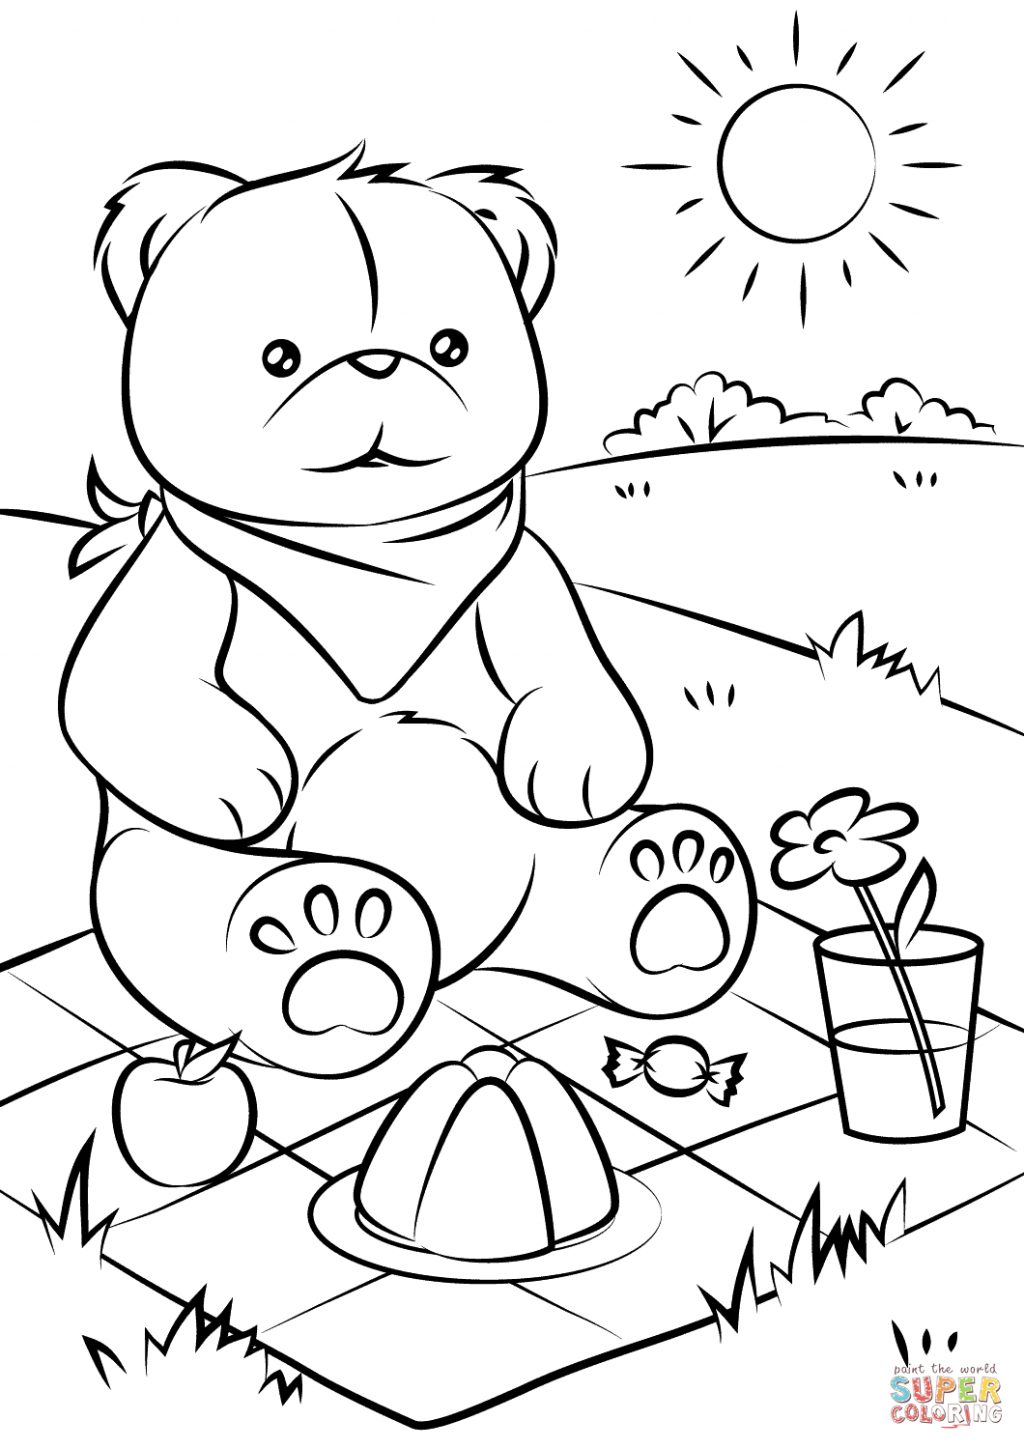 Coloring Pages ~ Teddy Bear Coloring Sheet Adult Free Printable - Teddy Bear Coloring Pages Free Printable